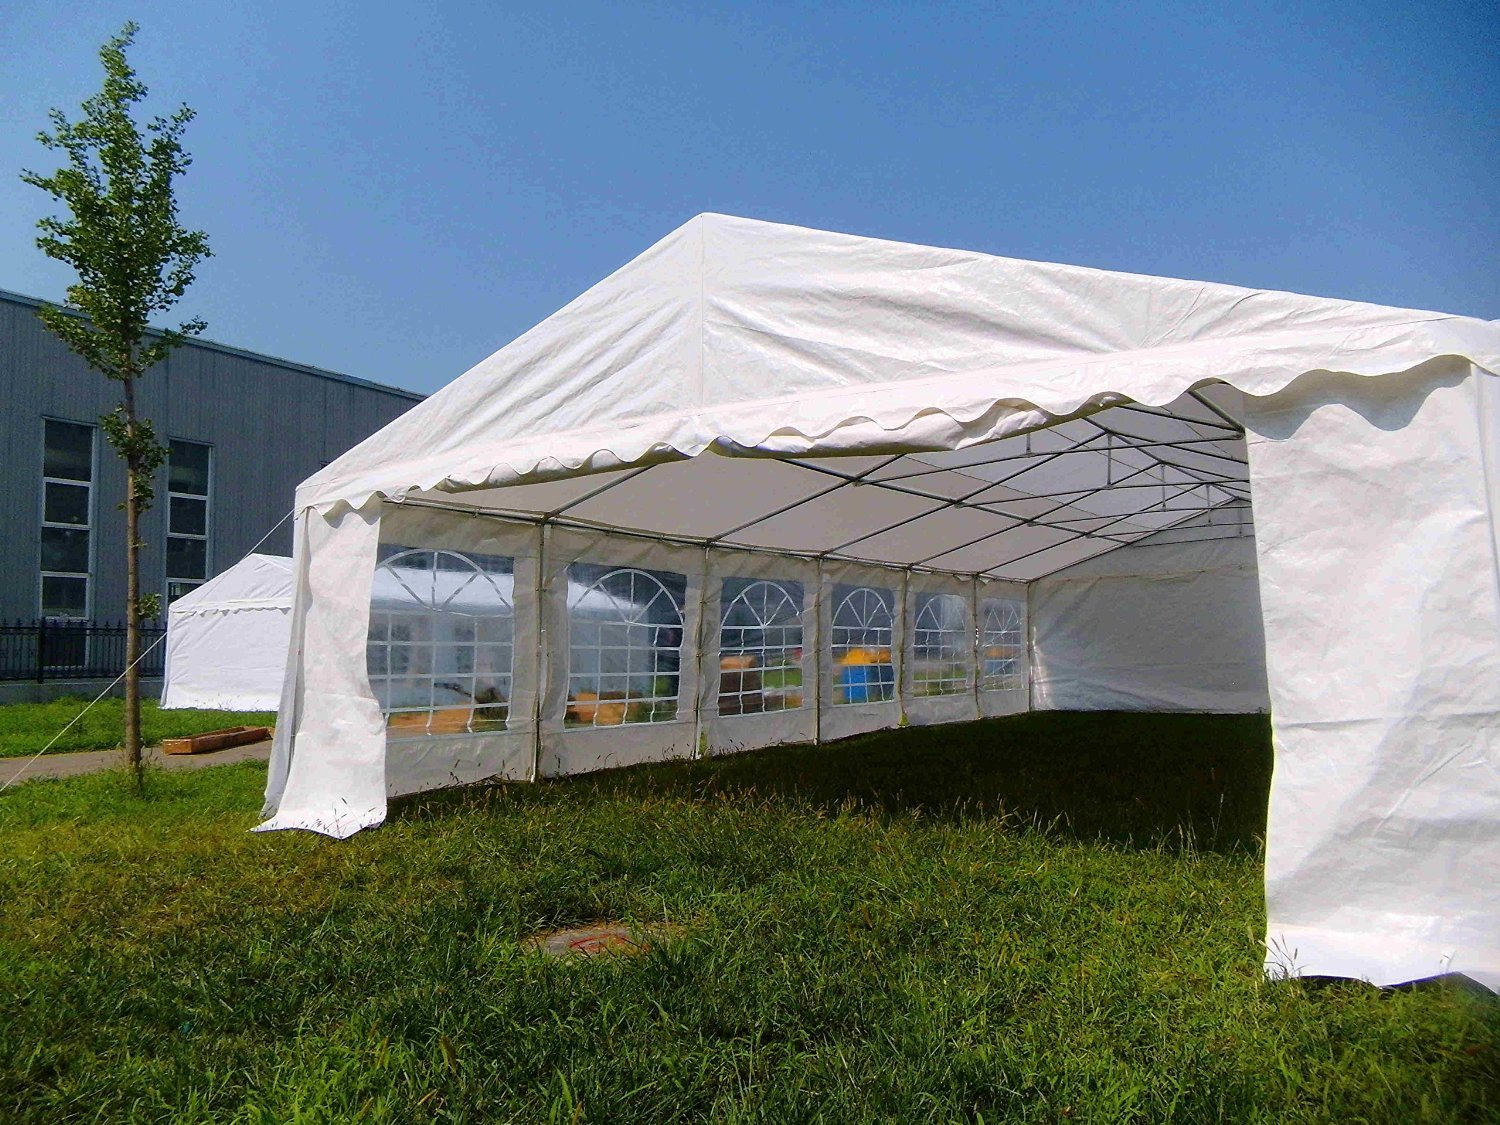 Amazon.com  OTLIVE 20x40 Foot Wedding Party White Gazebo Event Tent Storage Shed Car Shelter Heavy Duty Pavilion (White)  Garden u0026 Outdoor & Amazon.com : OTLIVE 20x40 Foot Wedding Party White Gazebo Event ...